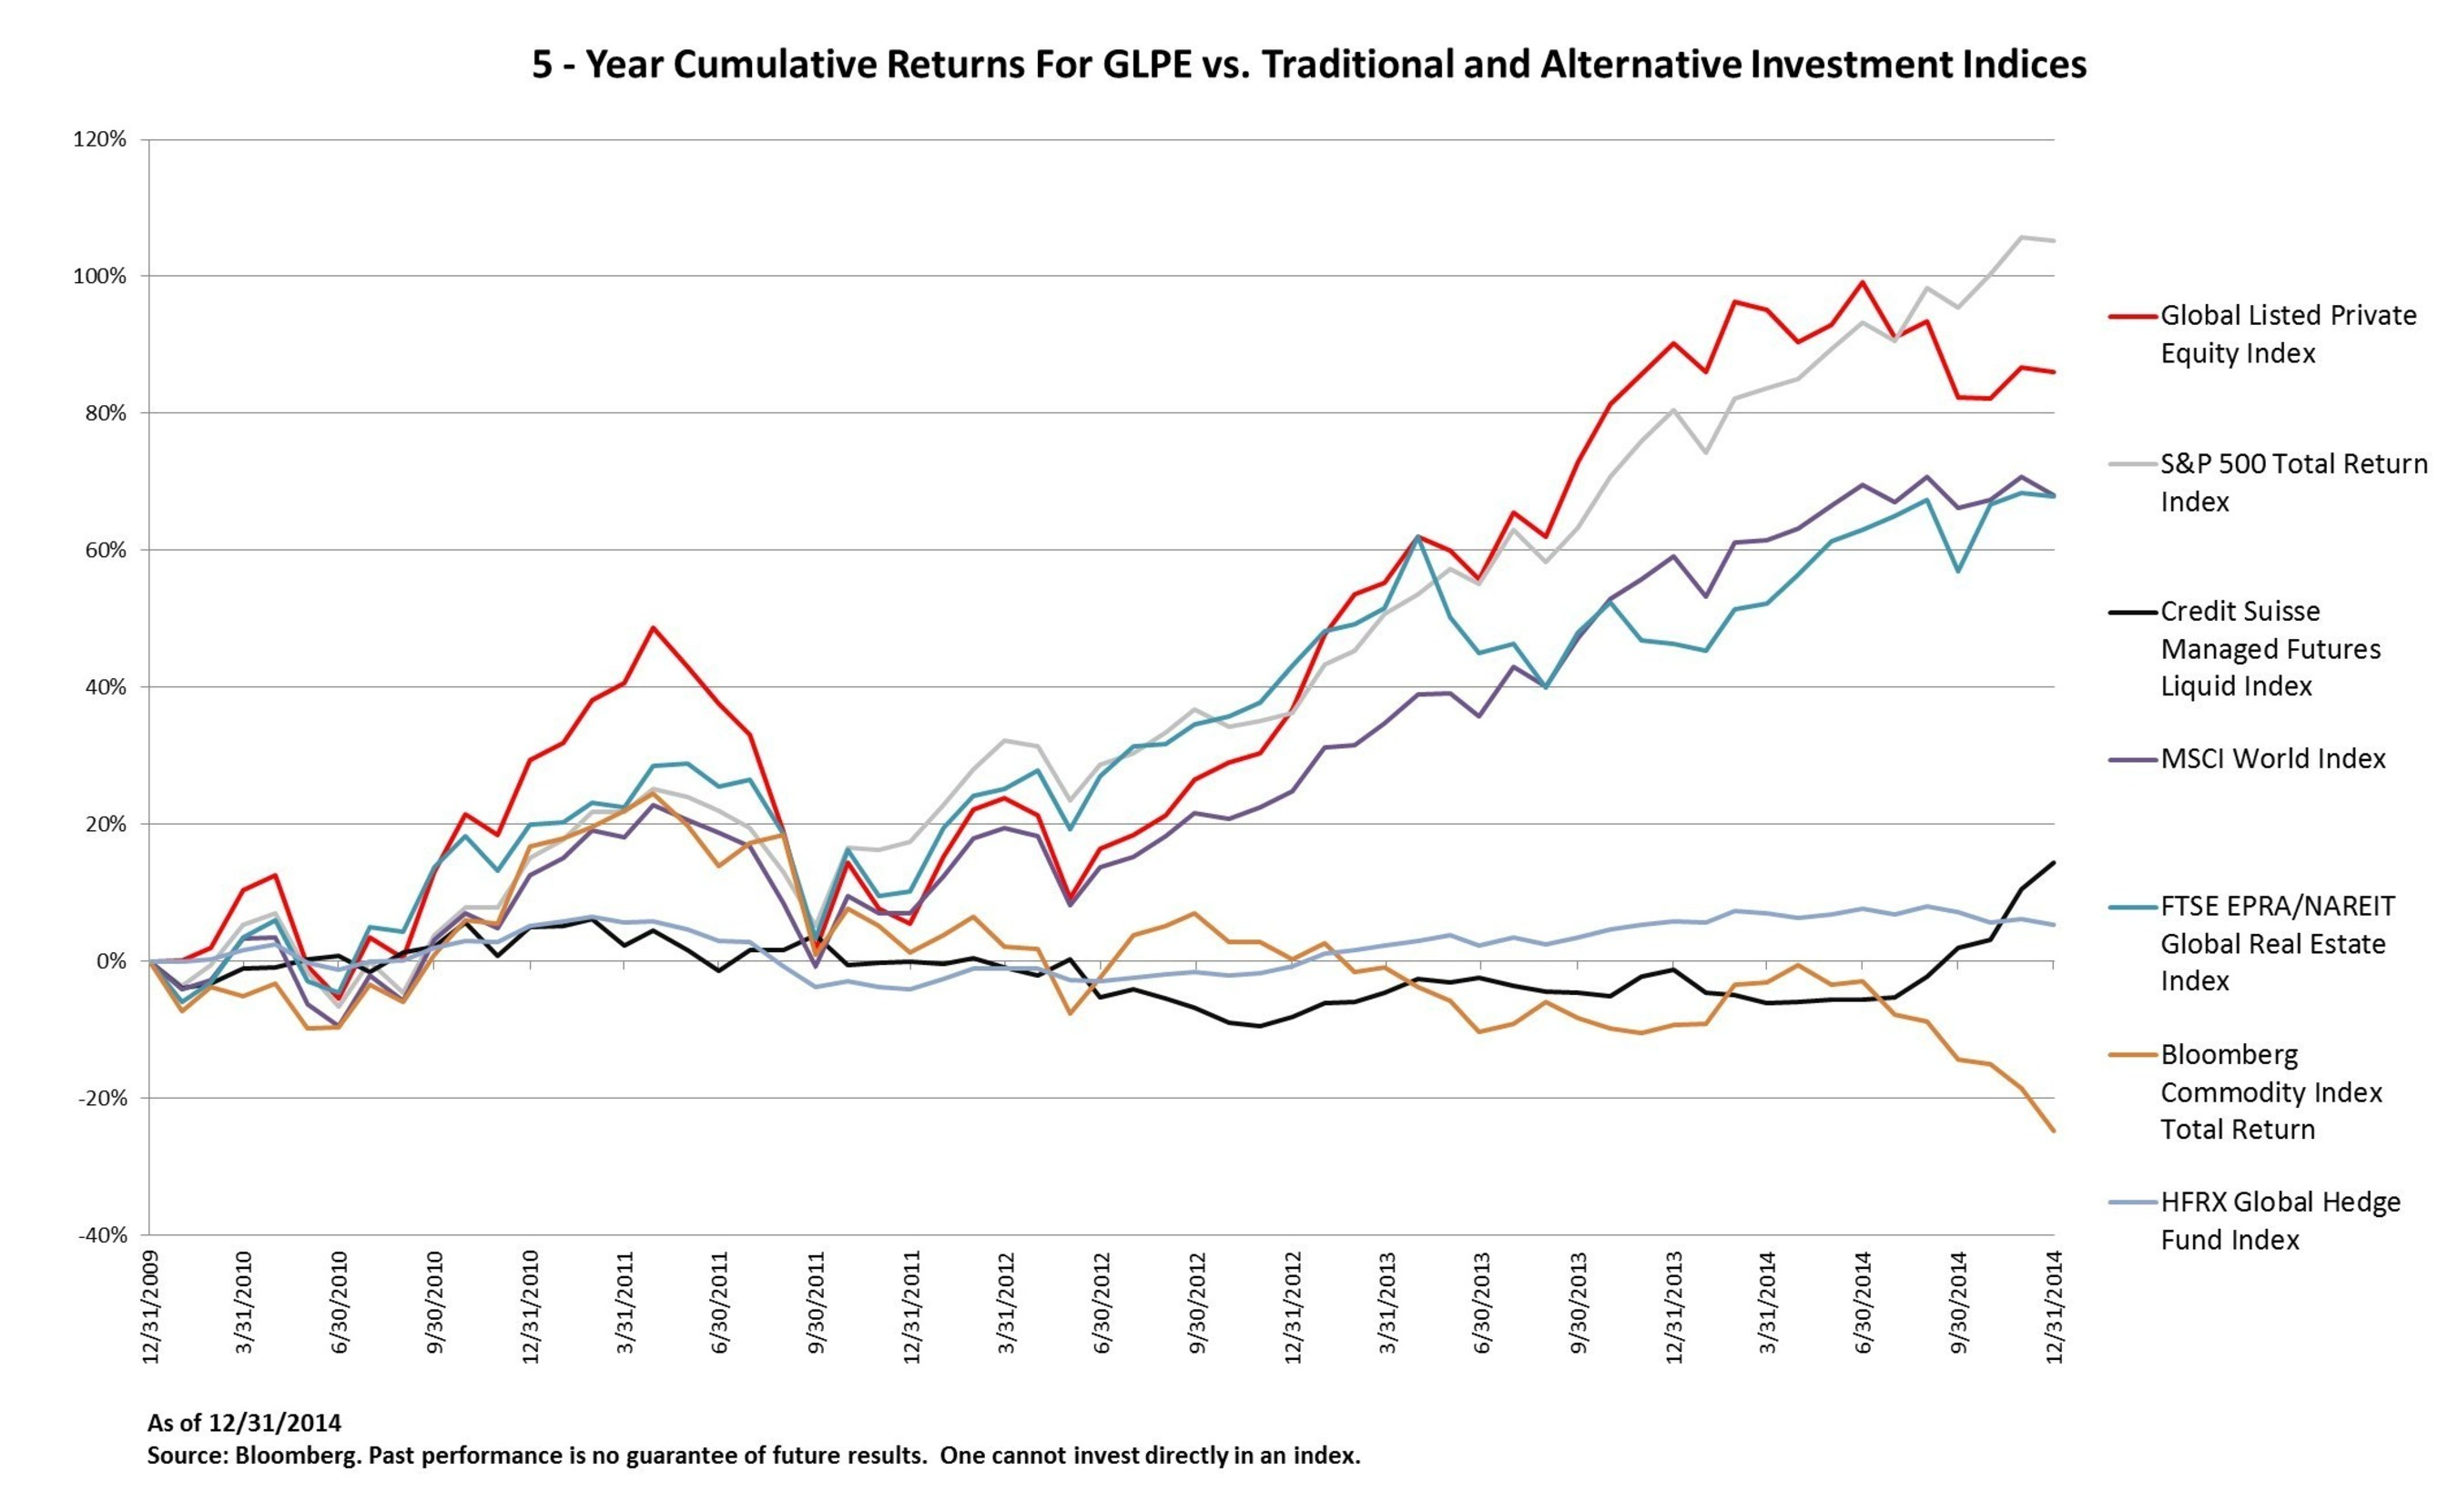 5 - Year Cumulative Returns For GLPE vs. Traditional and Alternative Investment Indices